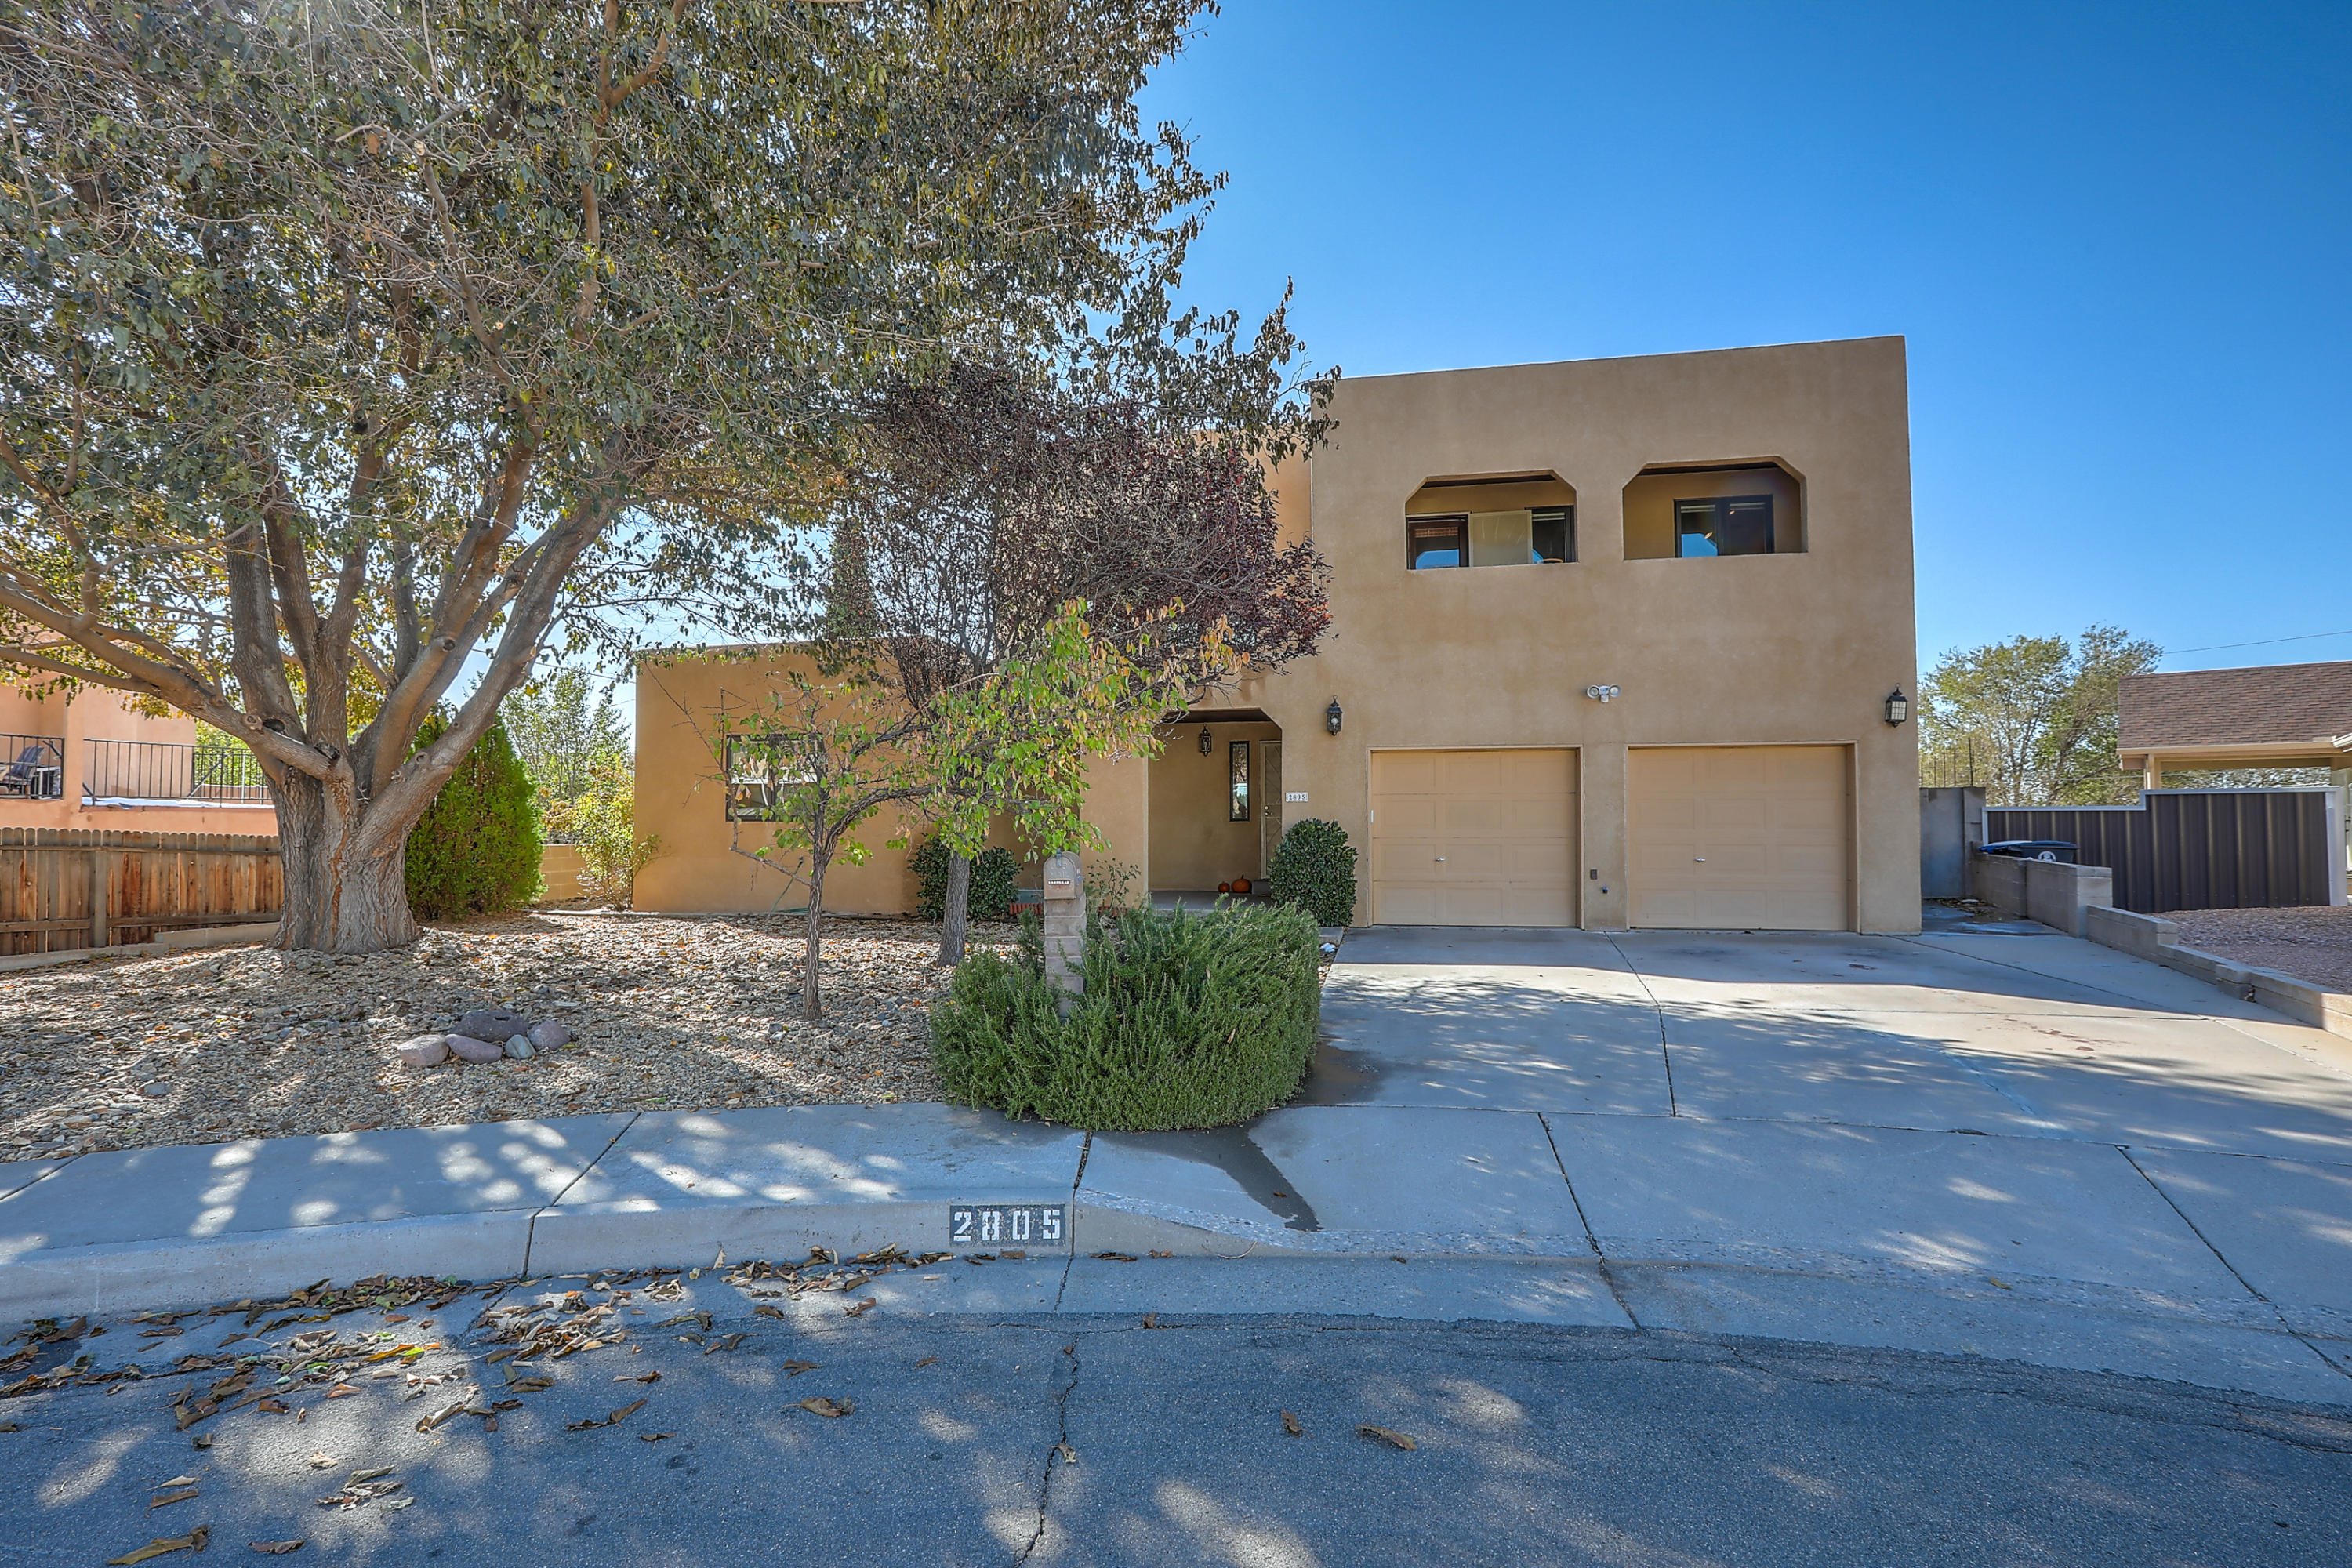 You won't want to miss this beautifully updated foothills home located in a private culs-de-sac. There are mountain views from the master balcony/bedroom, a great deck for entertaining and a in-ground gunite pool and jacuzzi. Granite counter-tops in the kitchen and baths. Windows have all been replaced with Pella In-Glass Blinds/Shades. Huge master suite and large walk-in closet. Enjoy the mountain and city views from the upstairs living area. Approx. 1,500sf of unfinished basement storage. Newer pool pump and heater. LVT floors were installed in 2019 along with a new roof (2019). Kitchen updated this year! New Hot Water Heater(2020). Don't miss out on this opportunity!